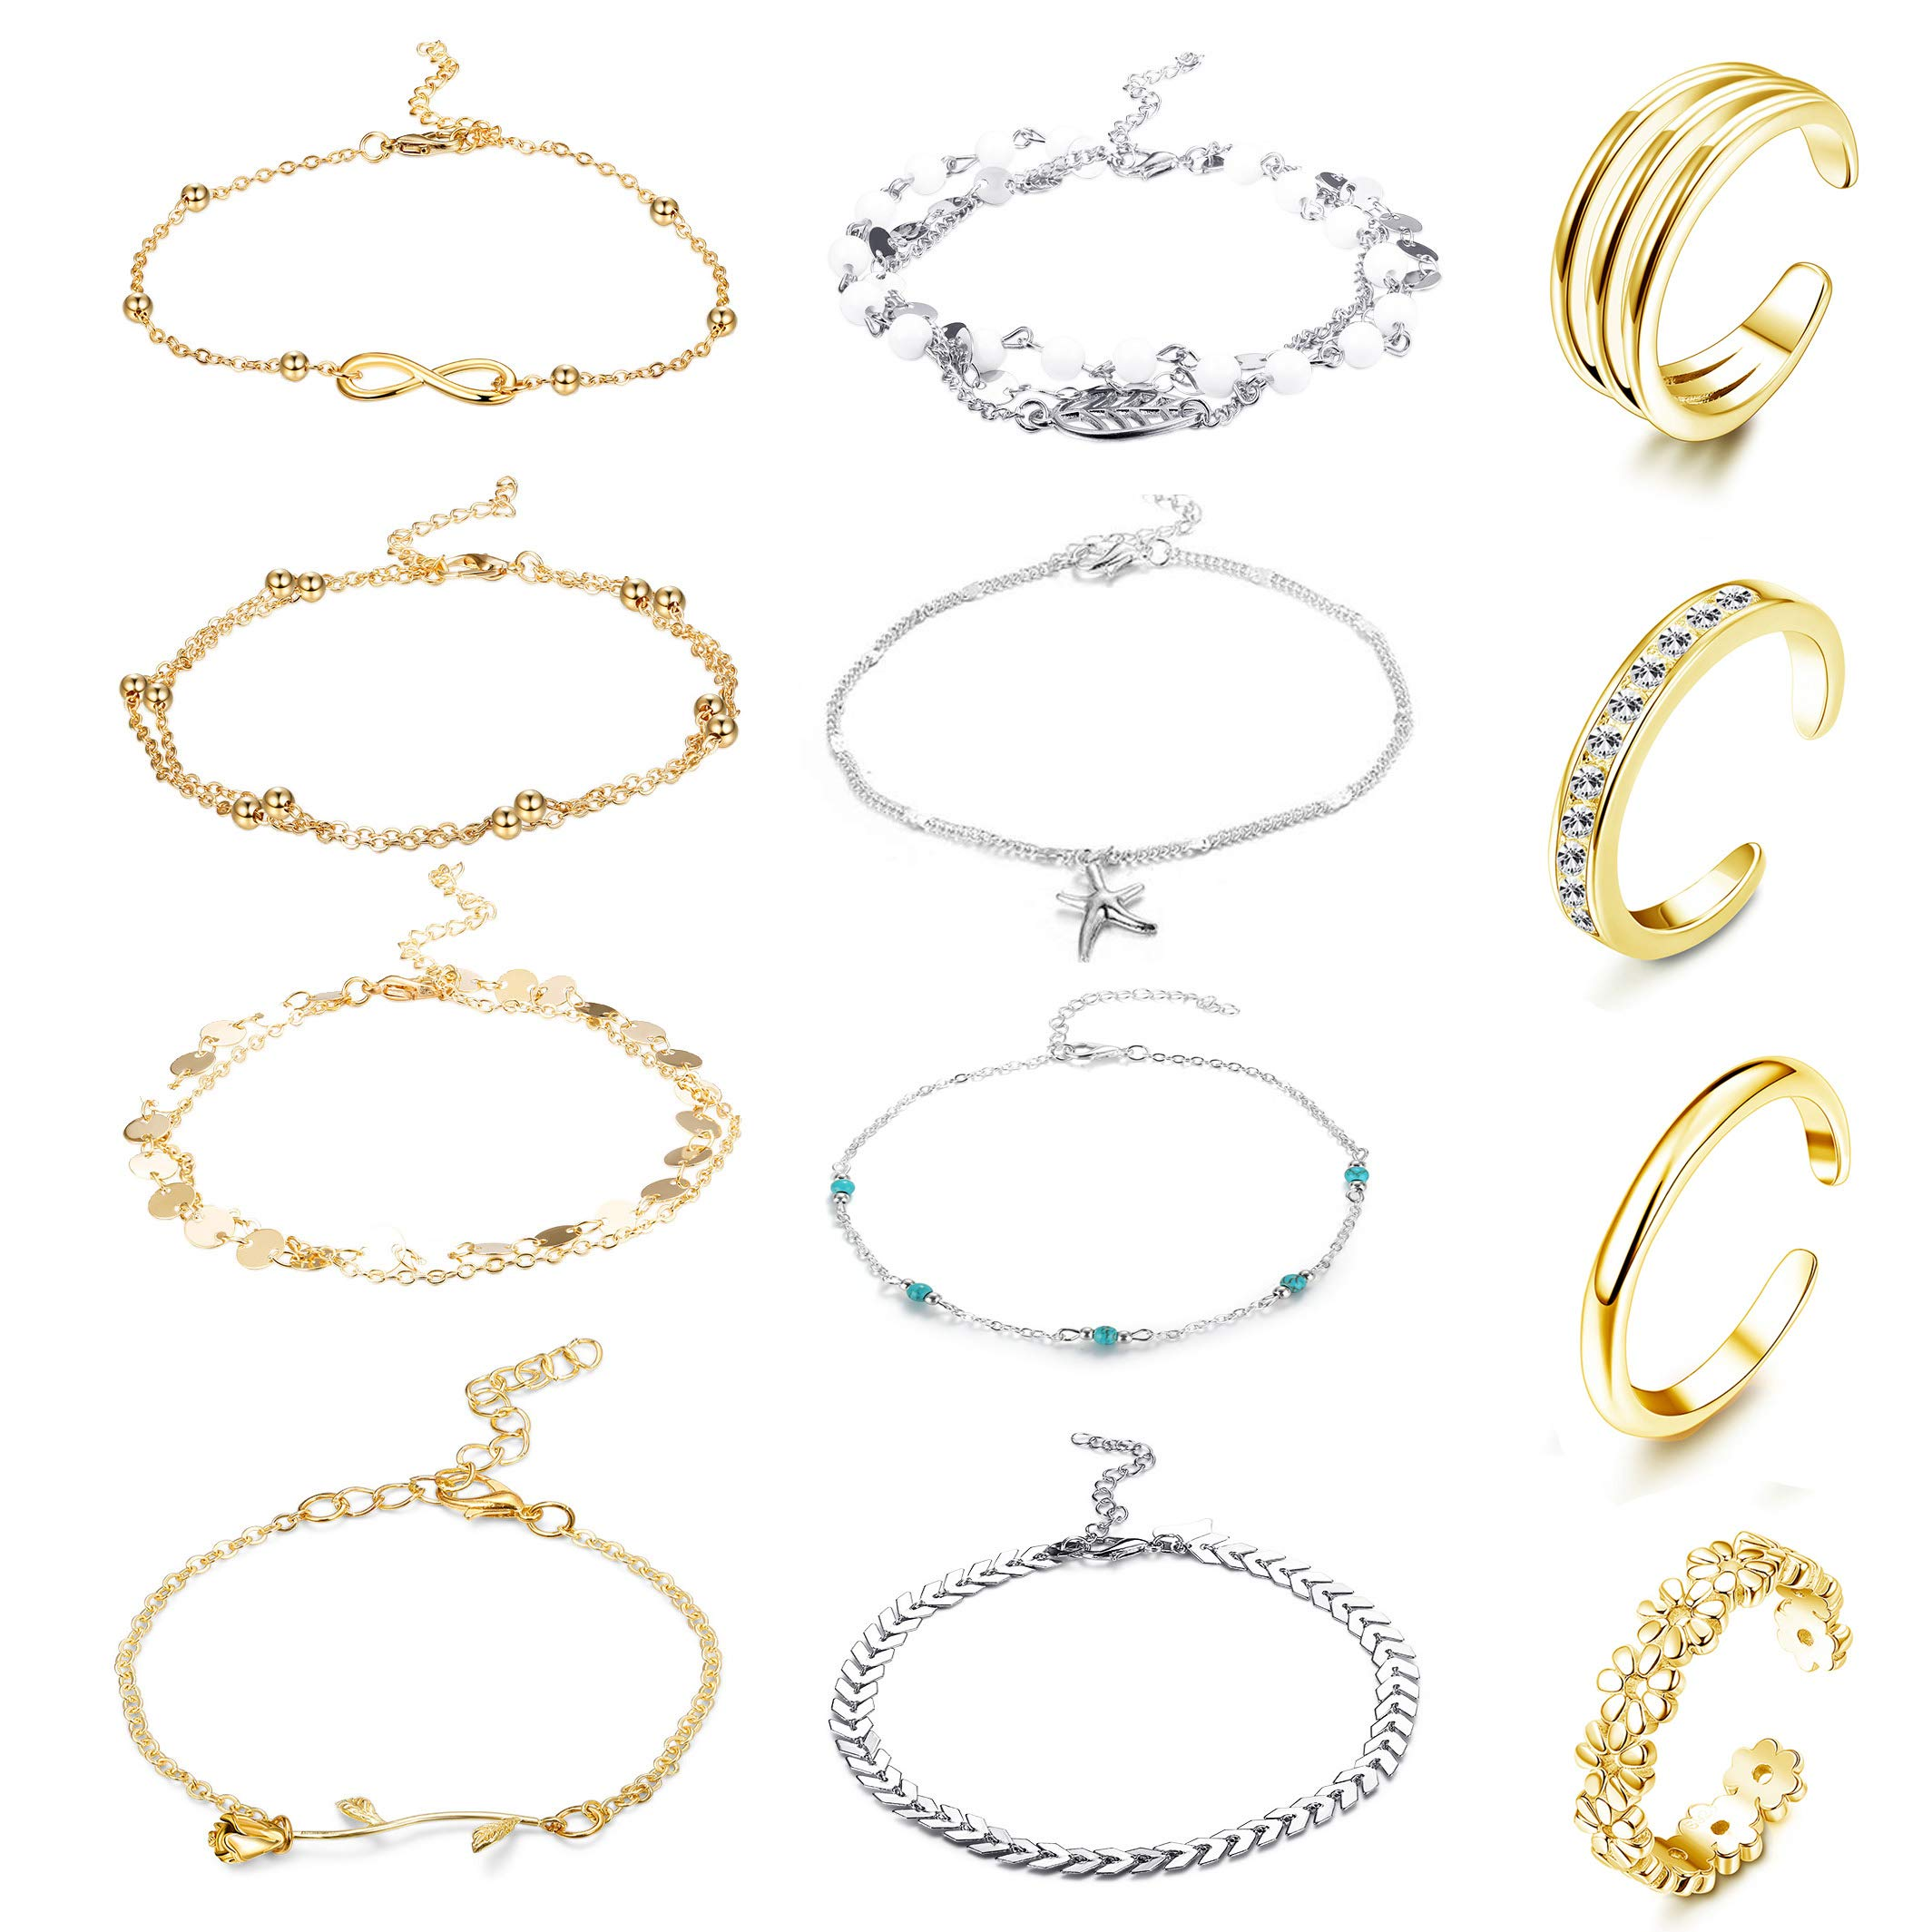 FUNRUN JEWELRY 12PCS Anklet and Toe Ring Set for Women Girls Beach Ankle Bracelets Adjustable Open Toe Ring Foot Jewelry (Color B) by FUNRUN JEWELRY